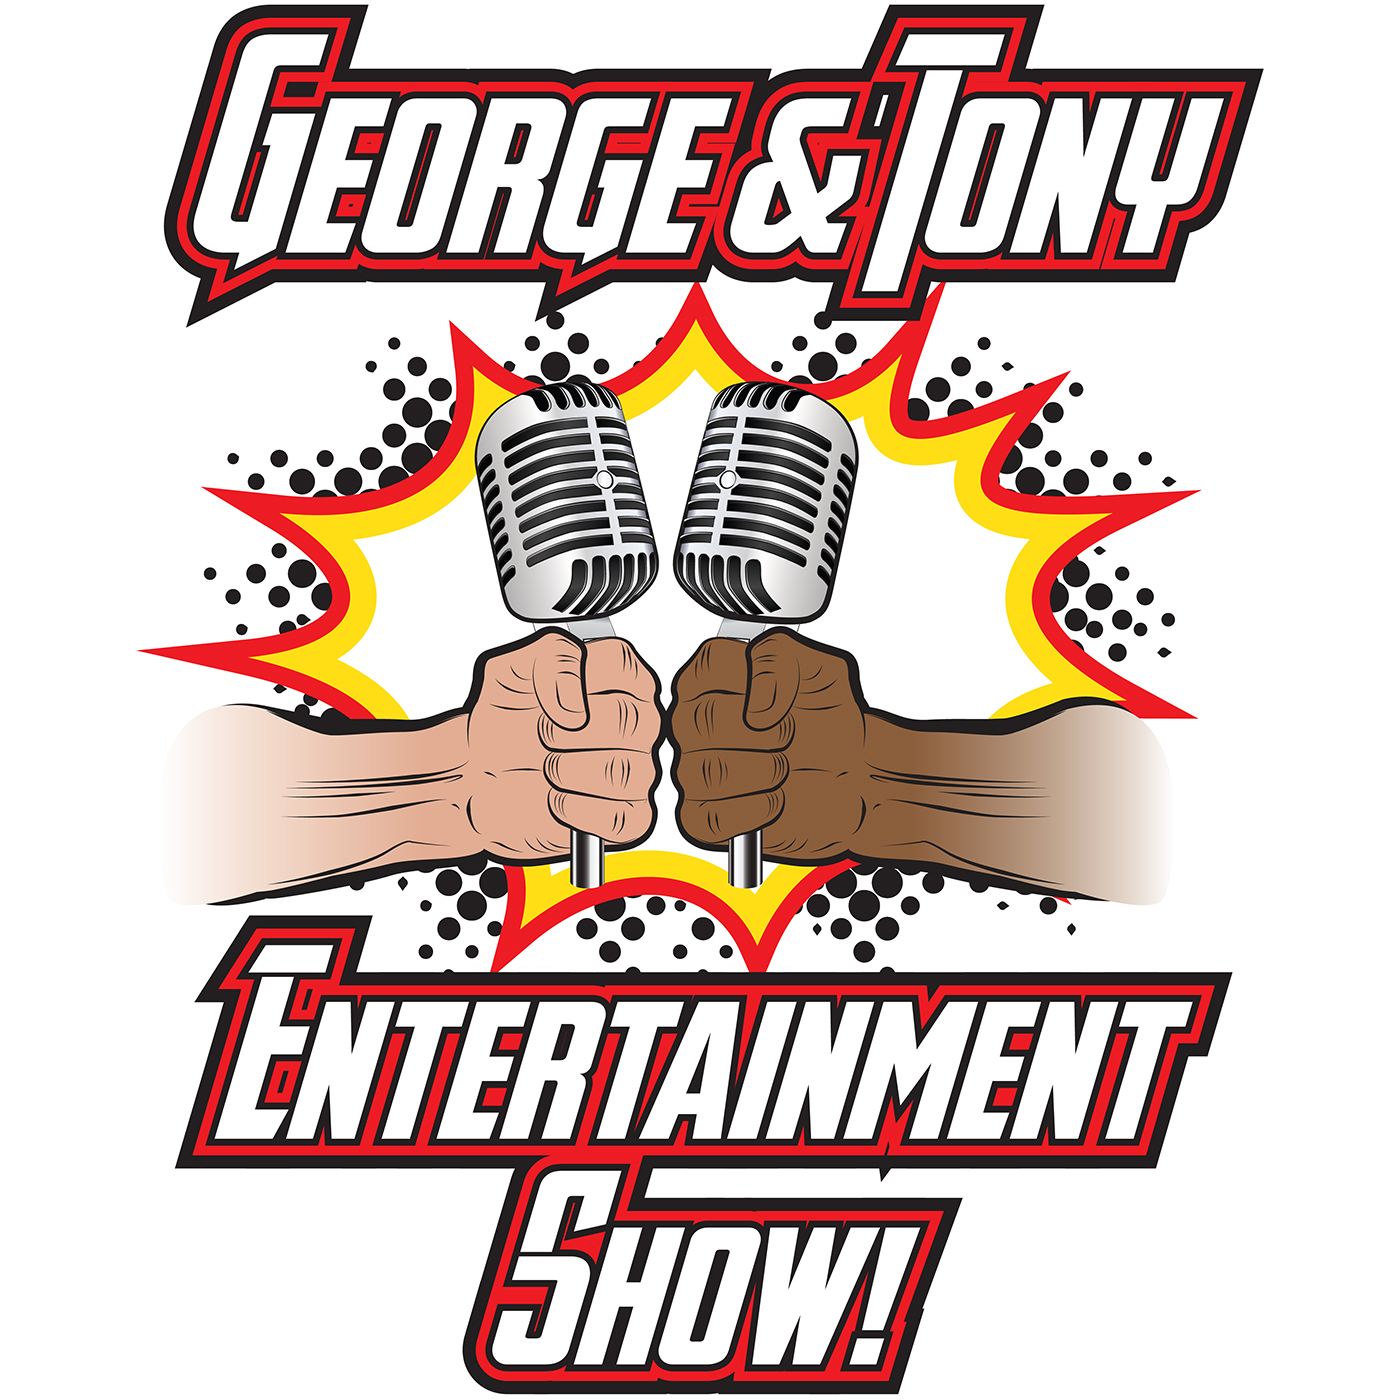 George and Tony Entertainment Show #153